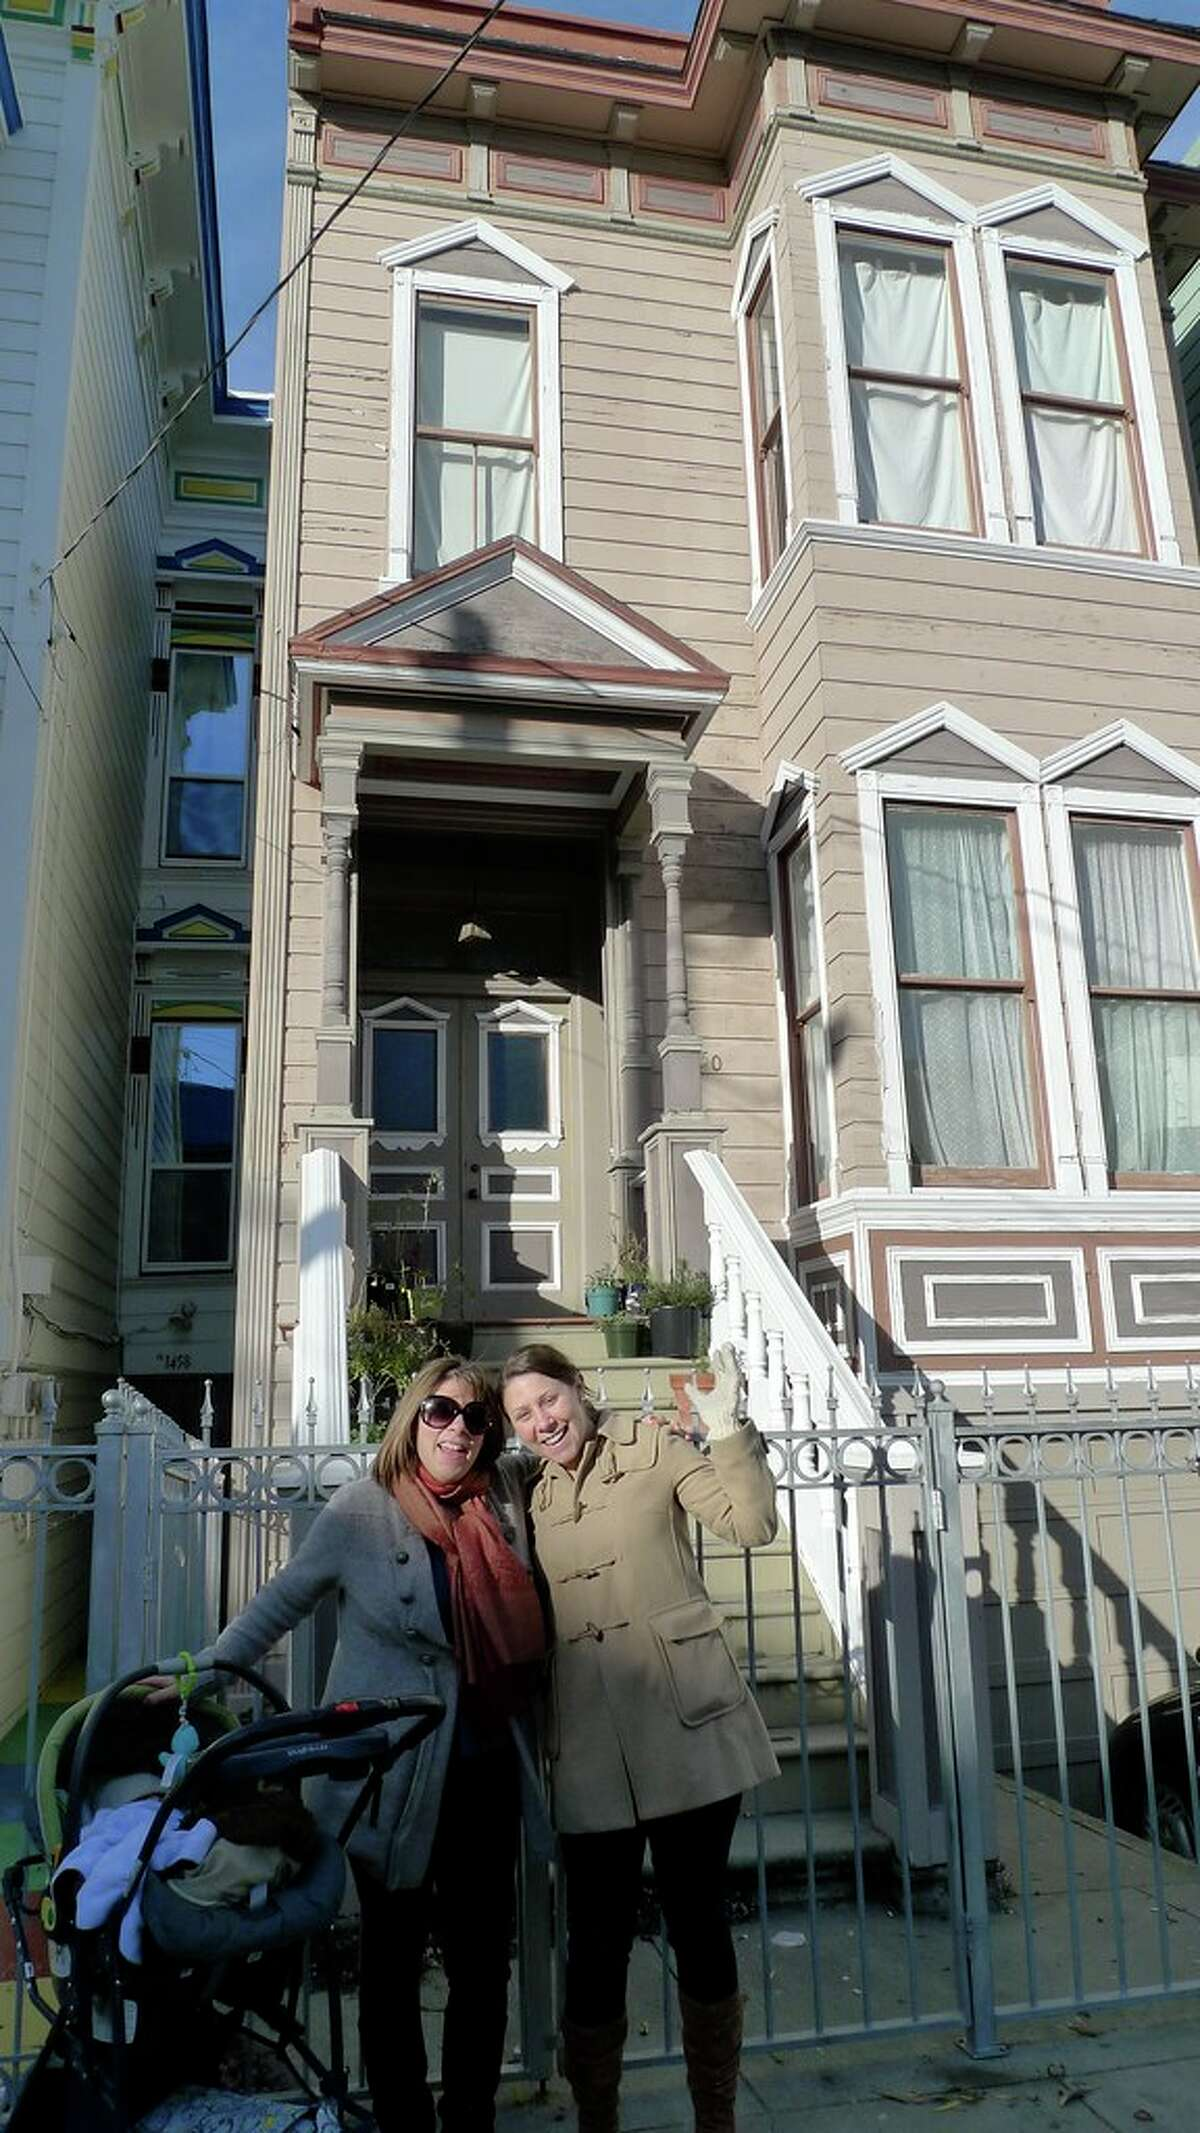 Me (in sunglasses), my sister and my then-infant son shortly before taking possession of the property.